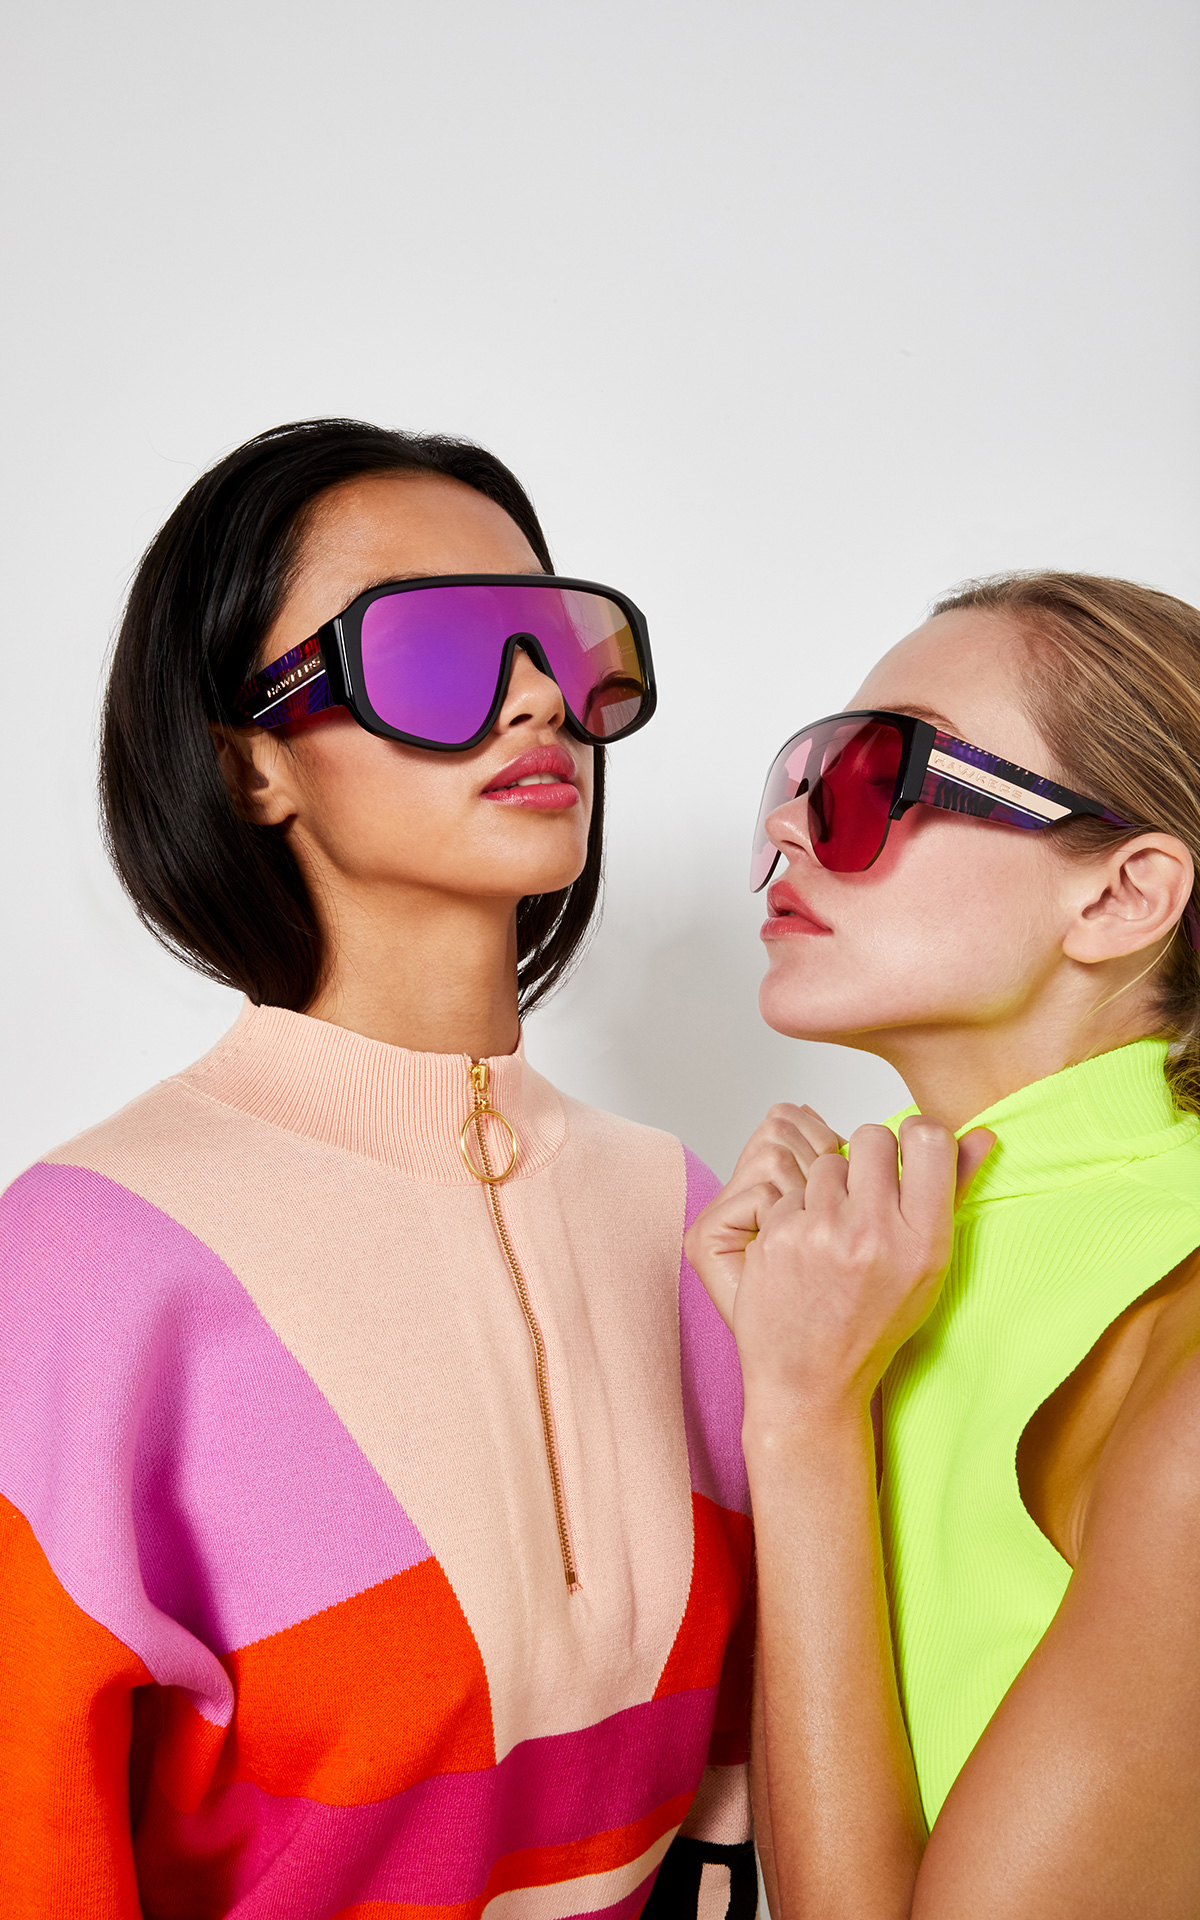 Women with sunglasses and neon clothes